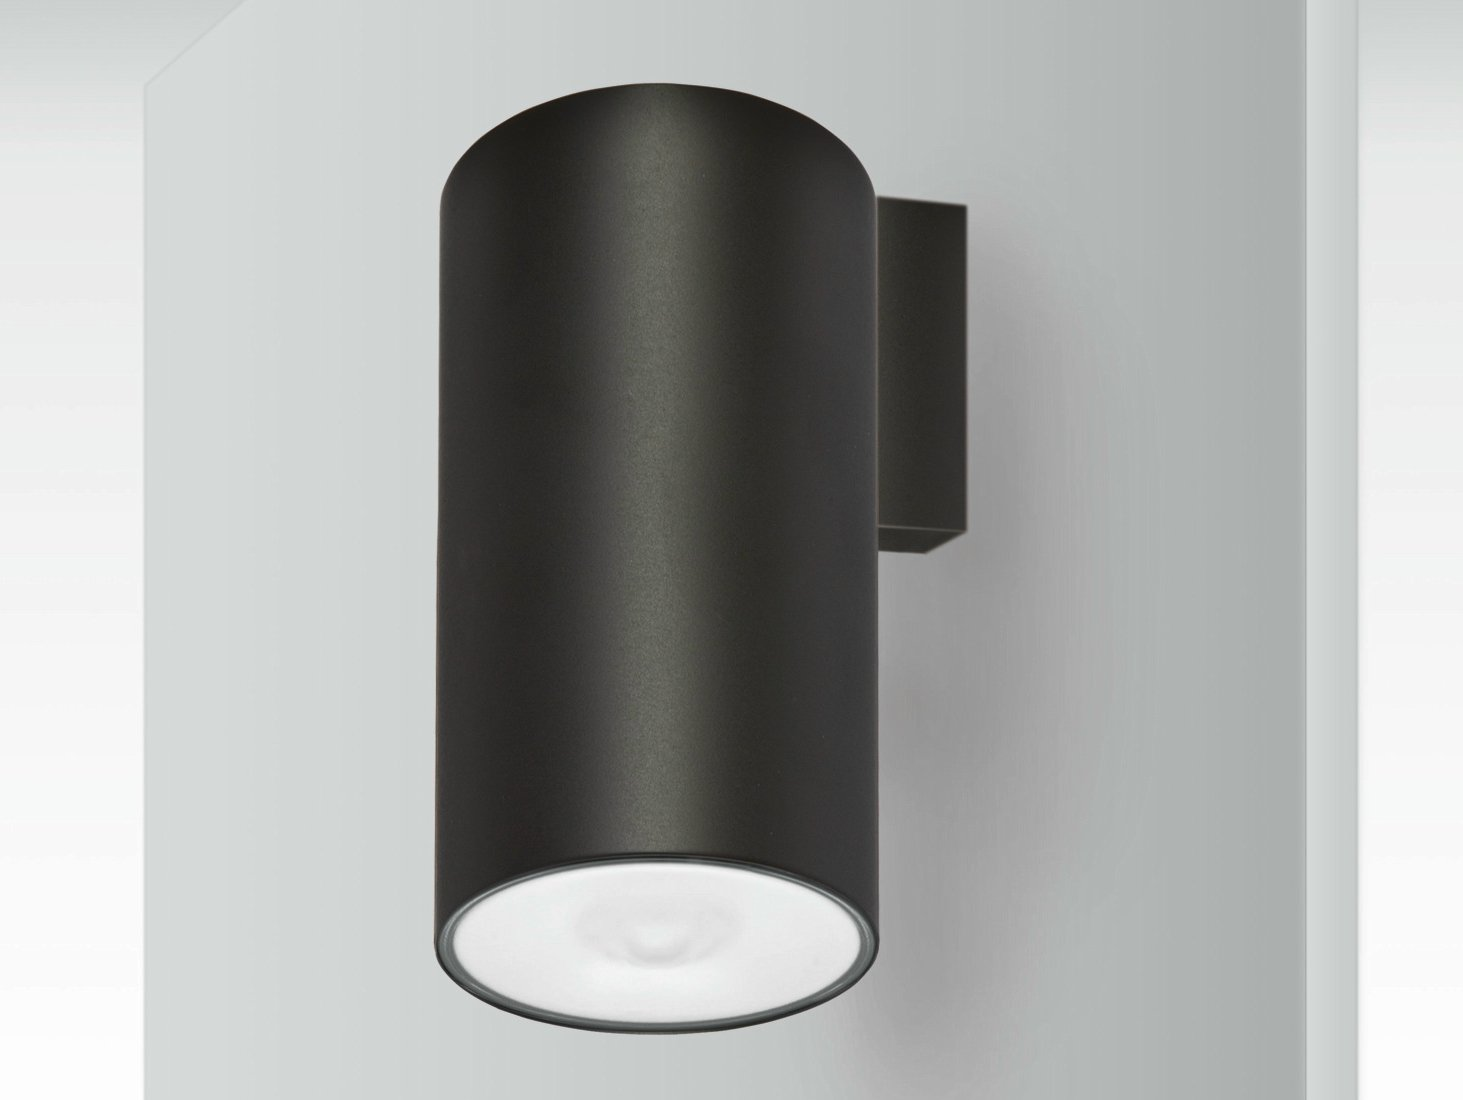 lens wall mounted emergency light by daisalux. Black Bedroom Furniture Sets. Home Design Ideas